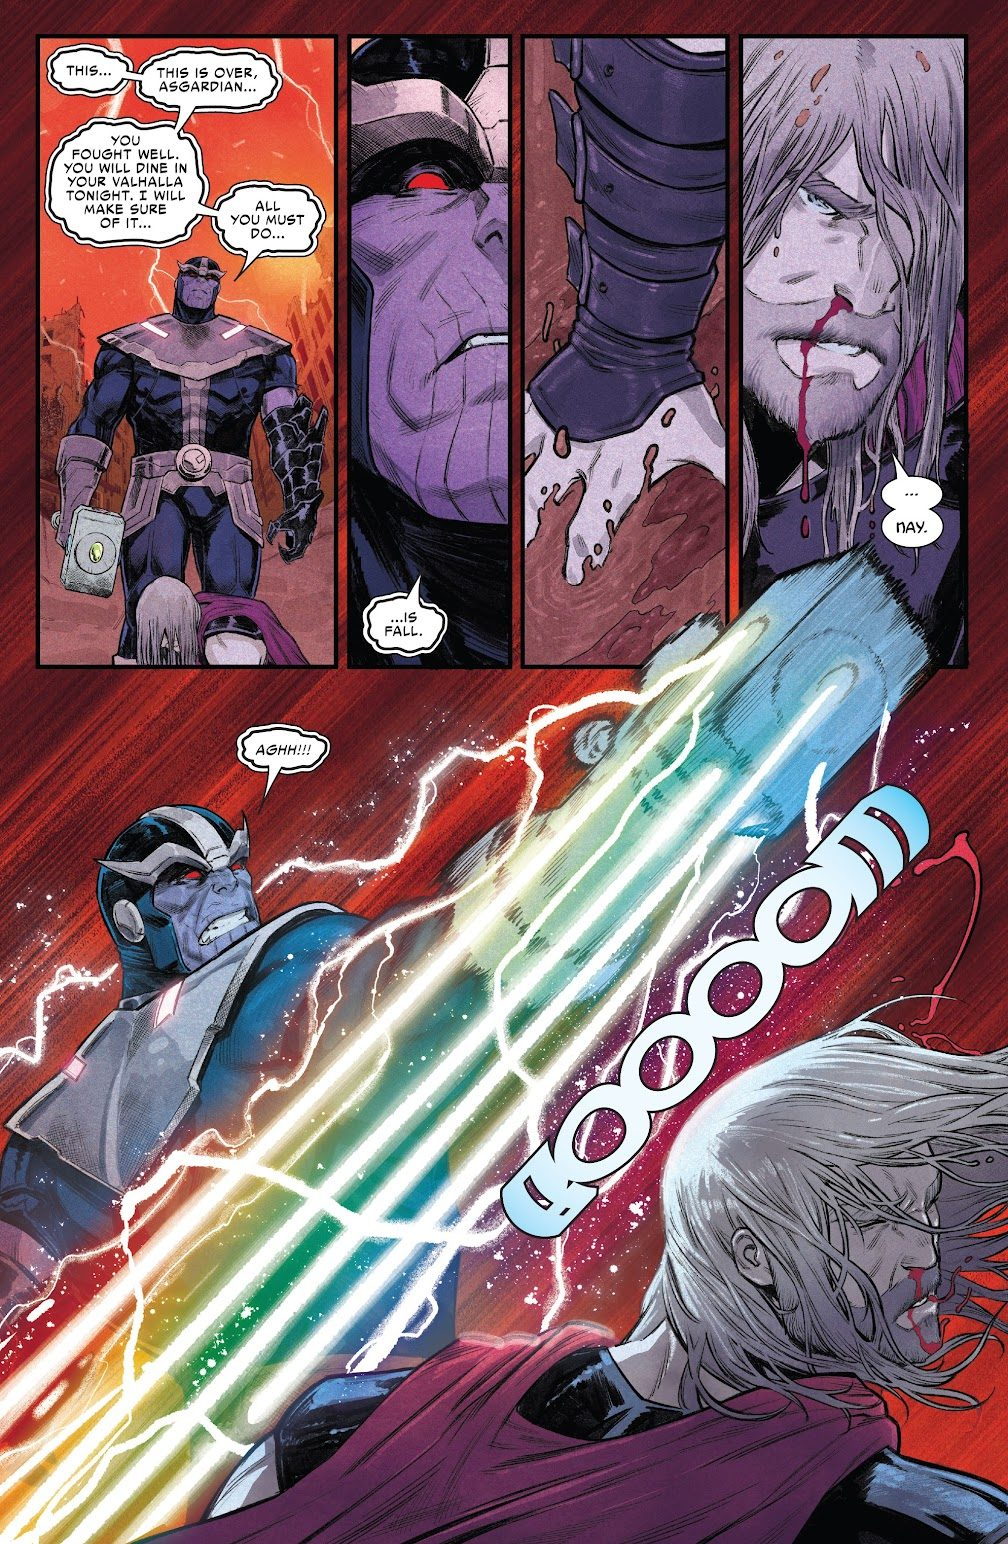 Thor's Nightmare About Thanos